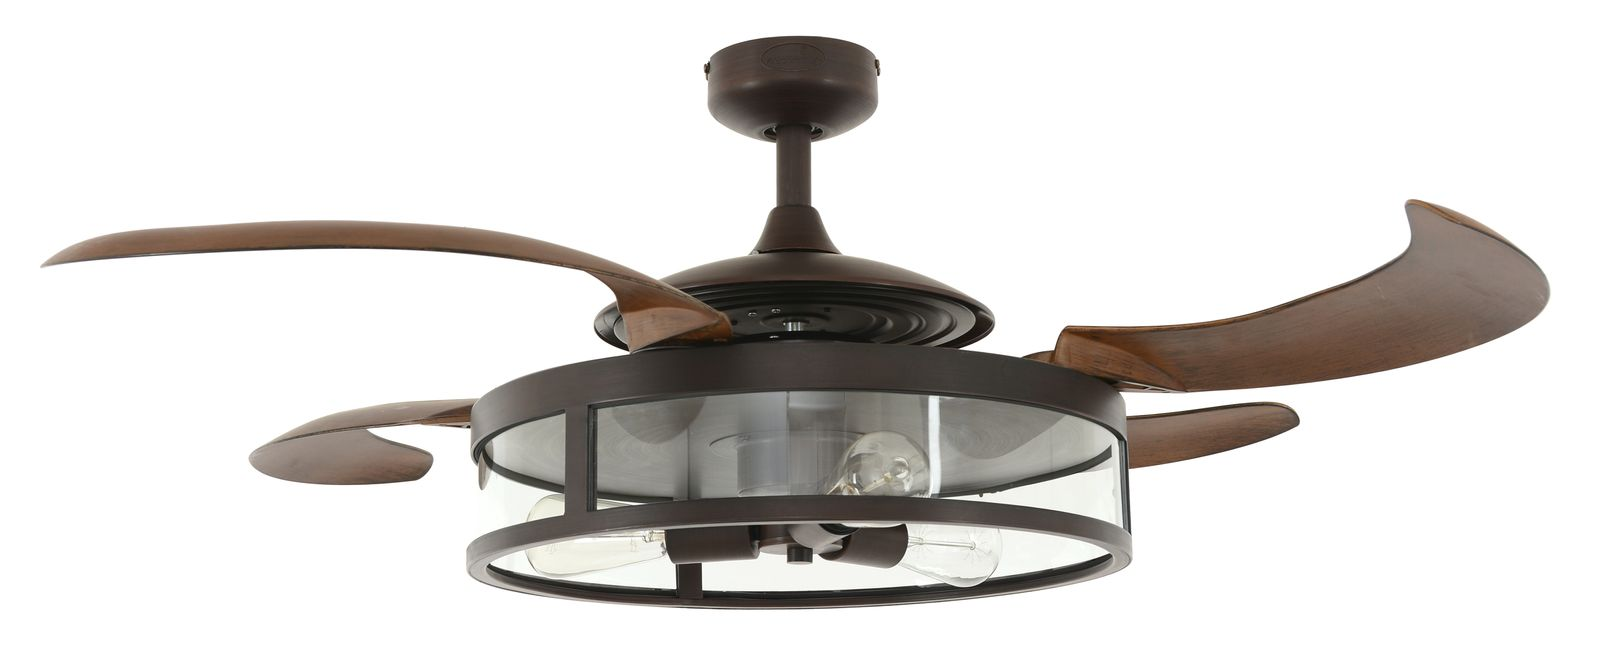 Retractable blade ceiling fan fanaway classic bronze ceiling fans for domestic and professional - Fanaway ceiling fan ...